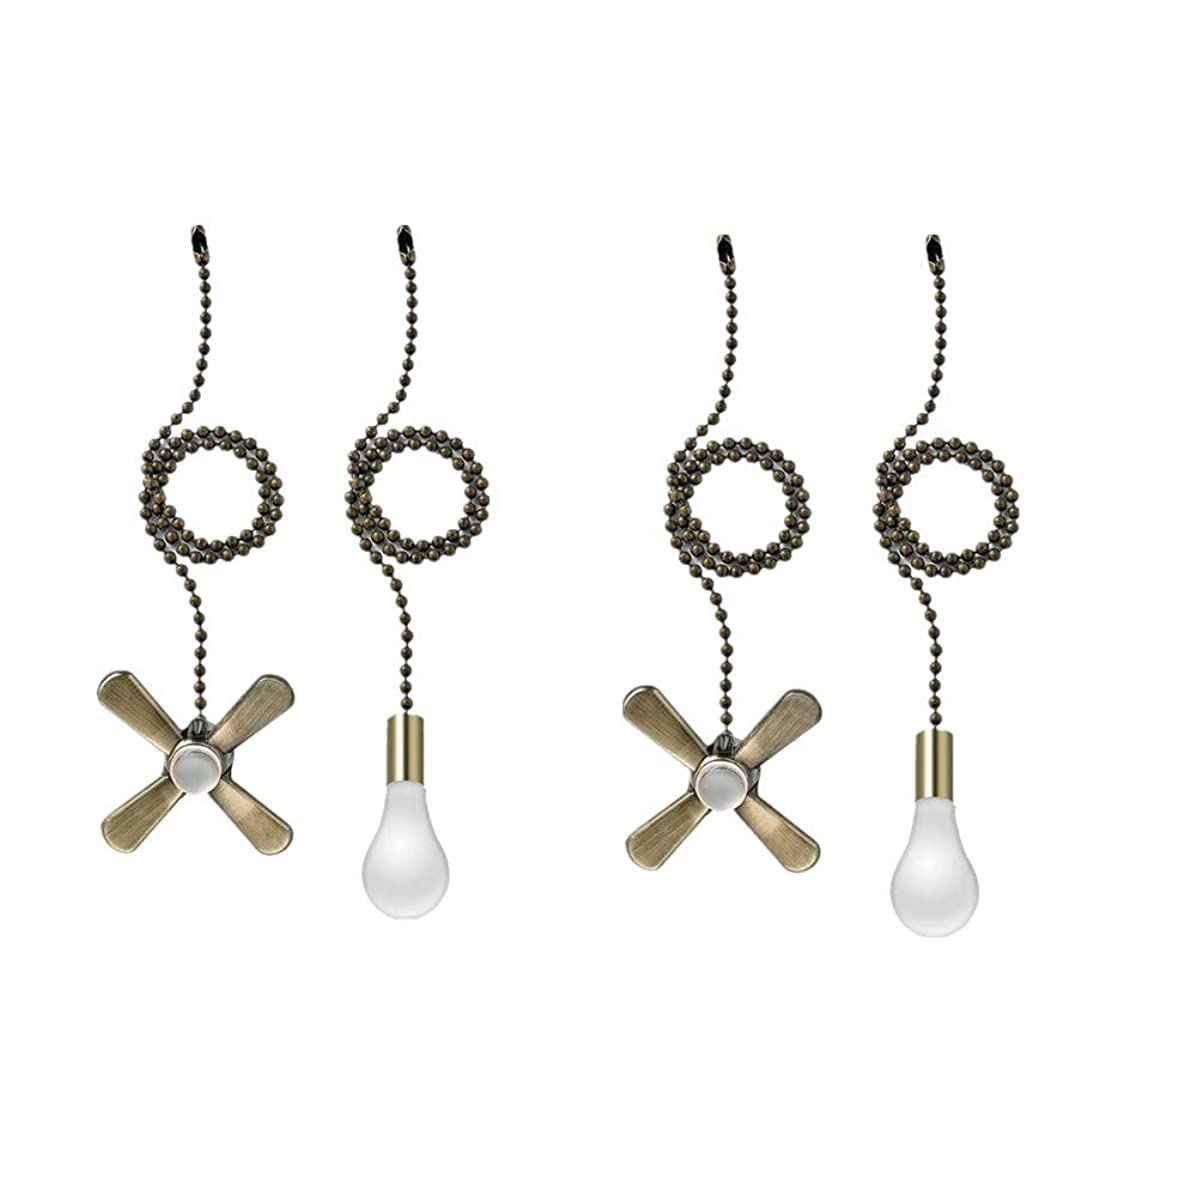 Ceiling Fan Pull Chain, 13.6 Inches Fan Pulls Set with Connector(2 Pack, Bronze)